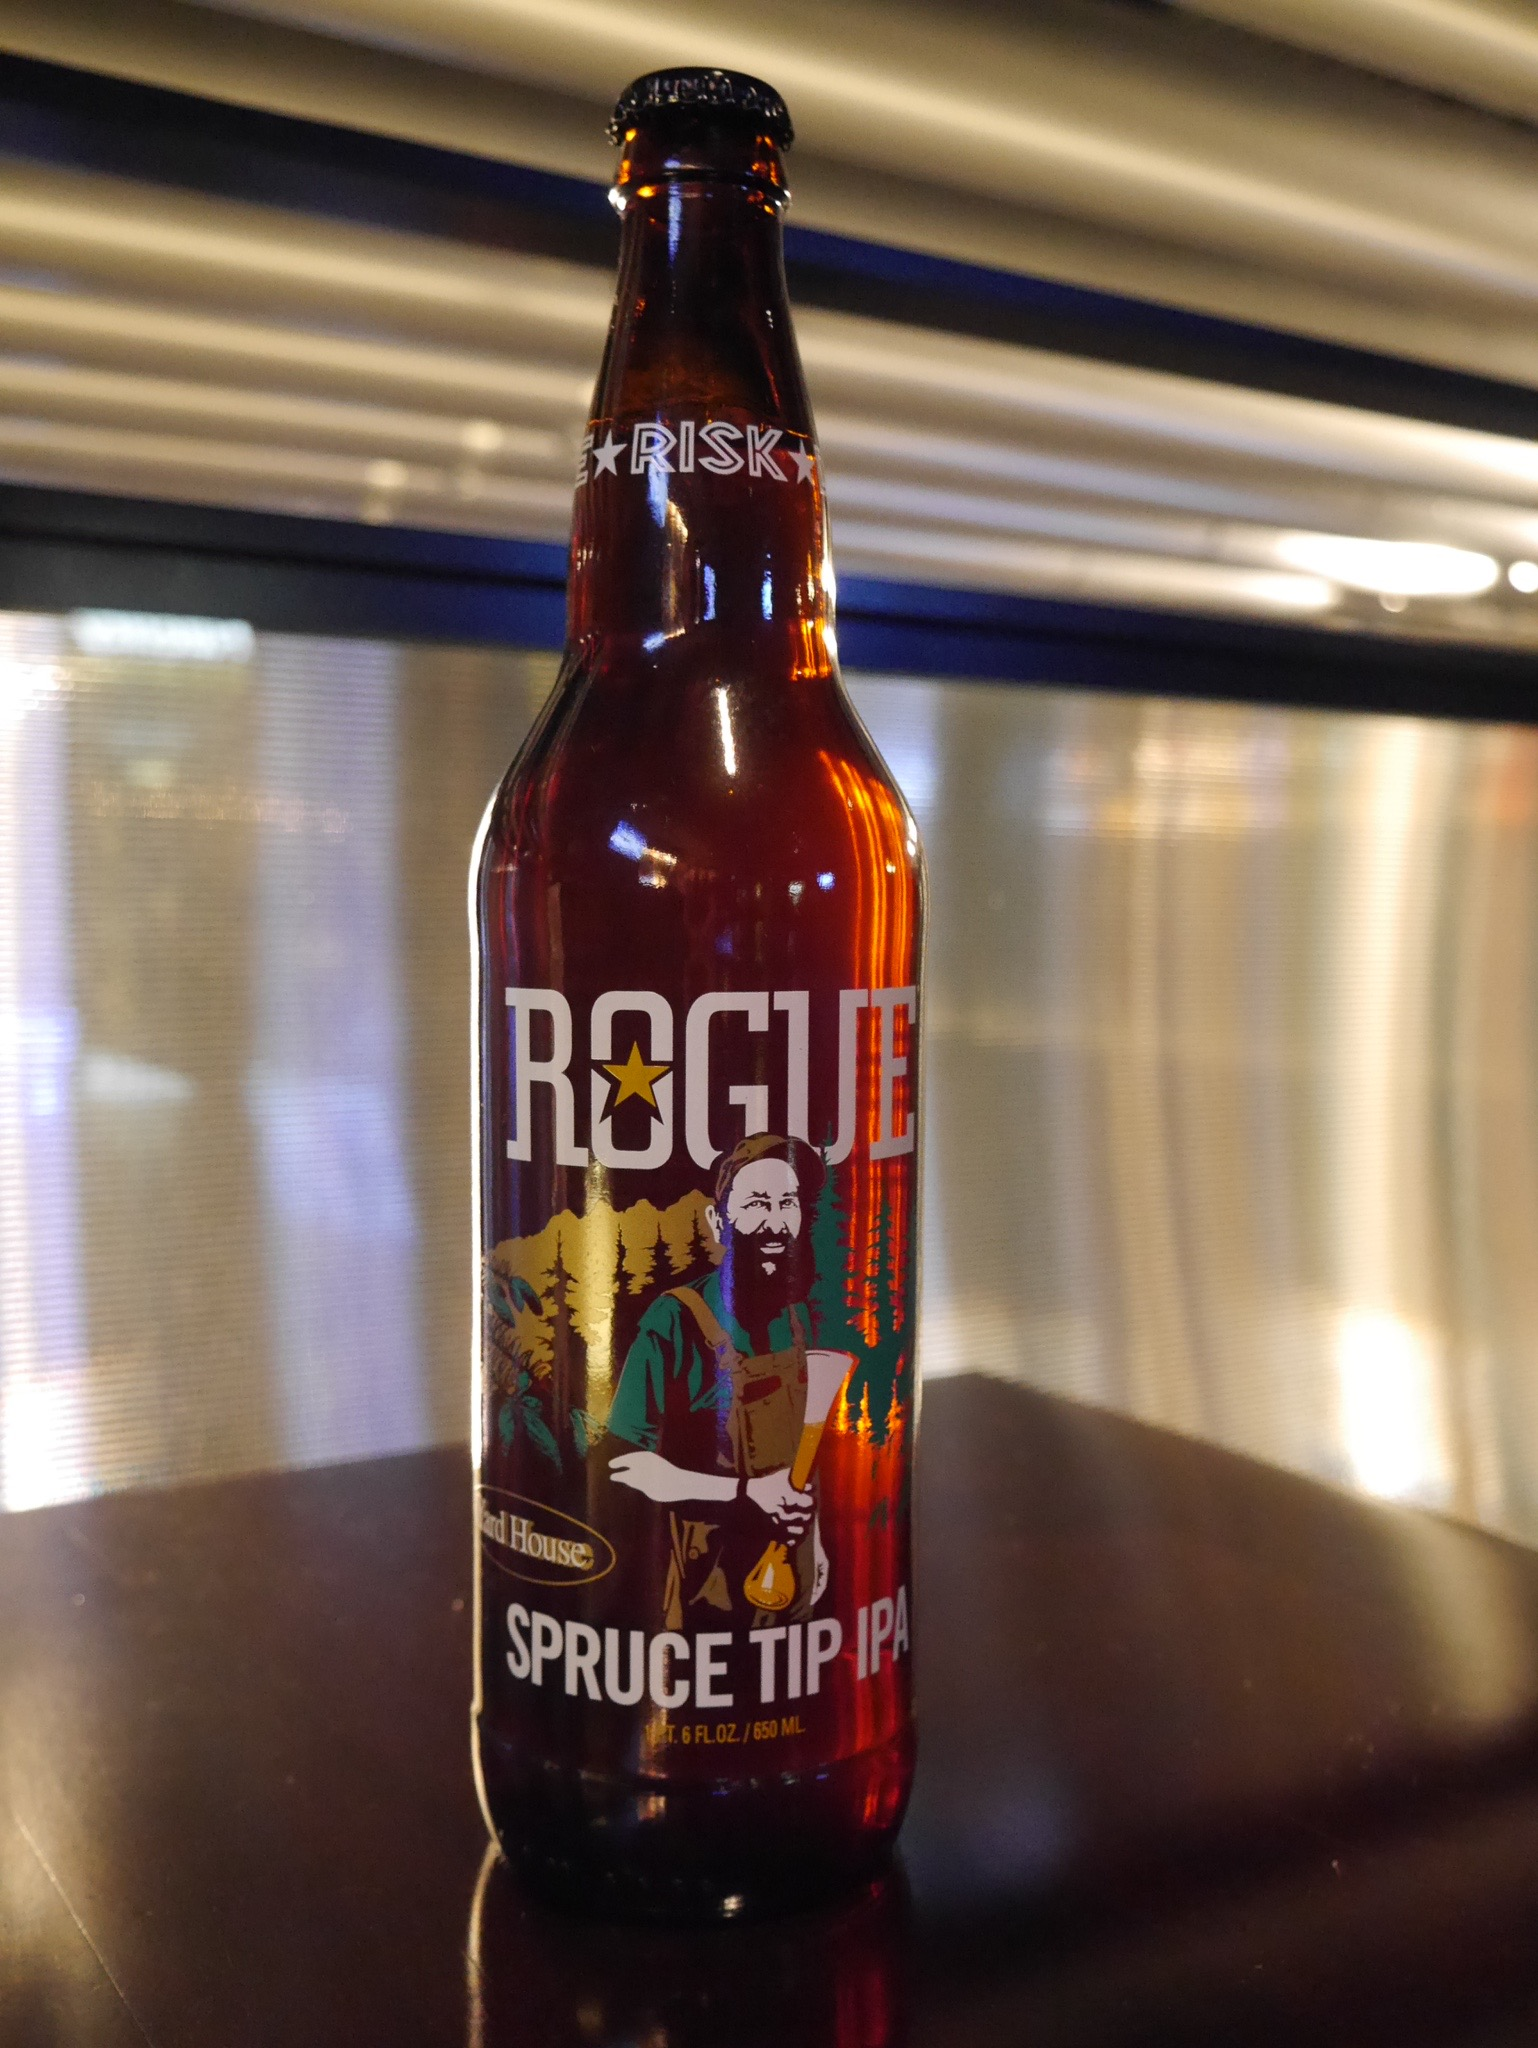 Rogue Spruce Tip IPA brewed in conjuction with Yard House (photo by Cat Stelzer)